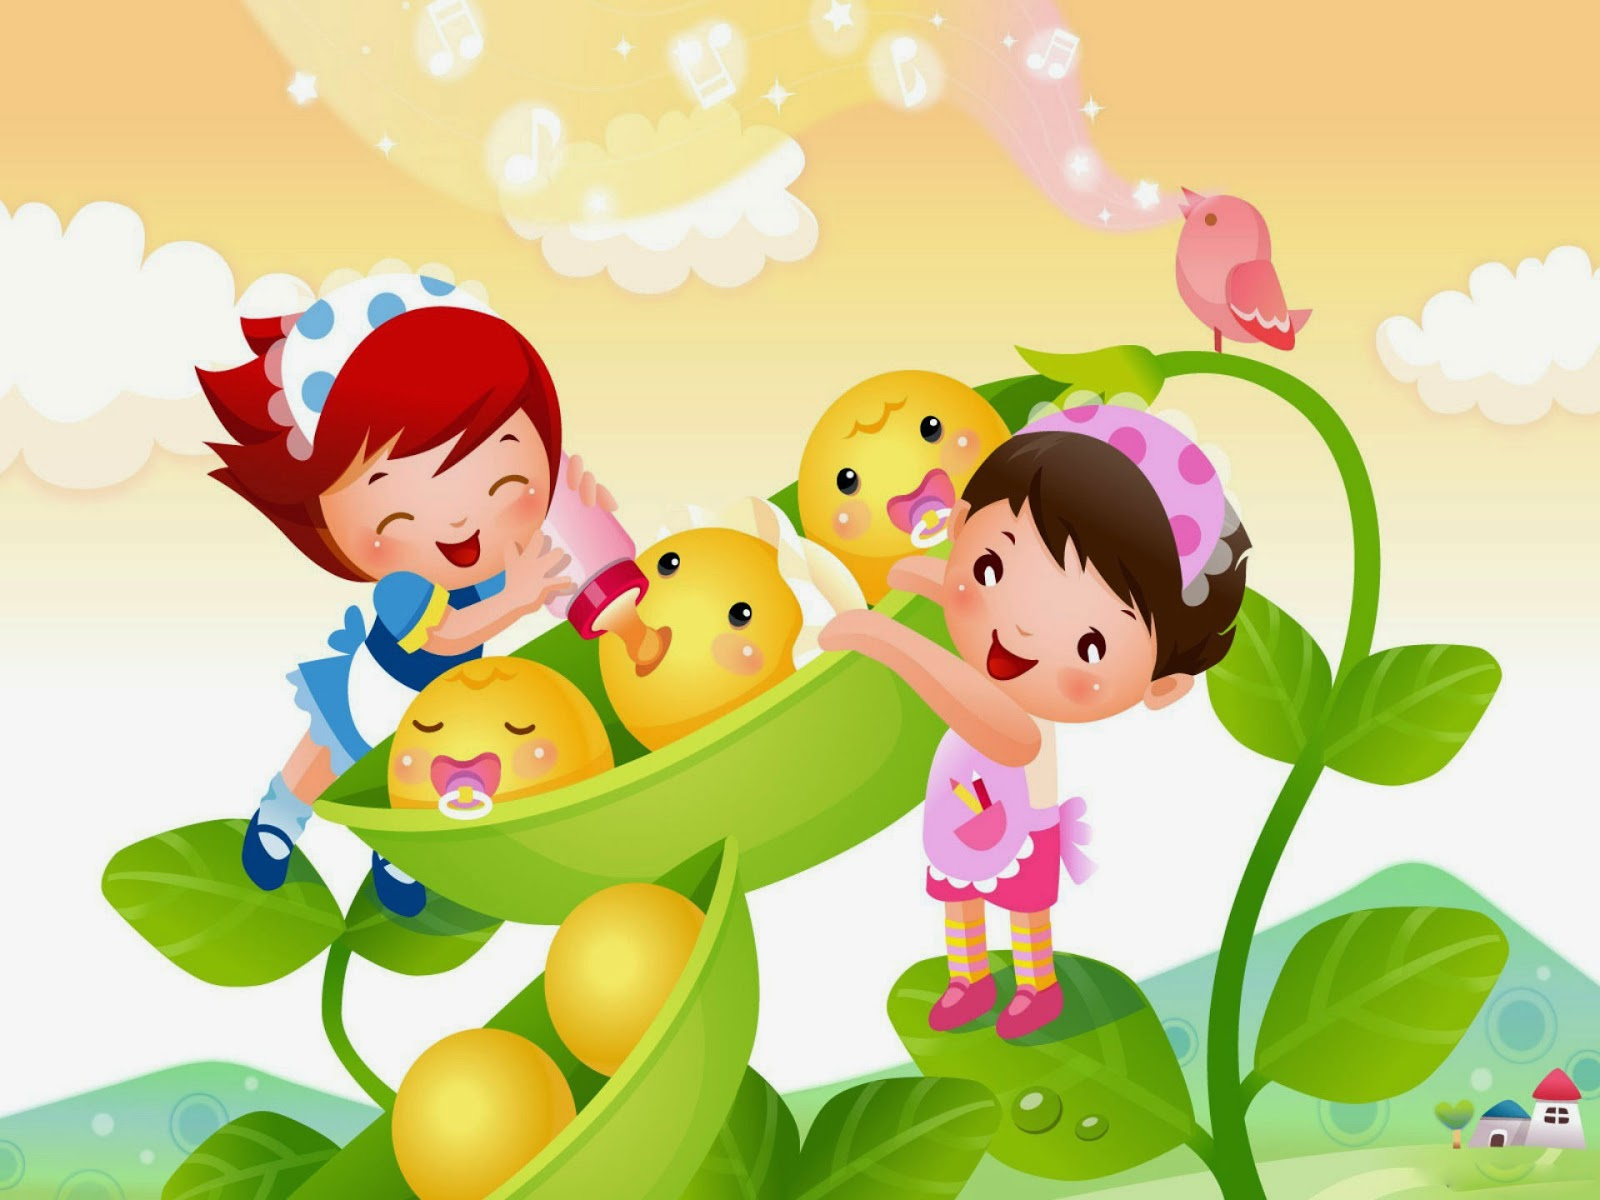 Love New cute cartoon Wallpaper : Kids cartoons: latast kids cartoon wallpapers